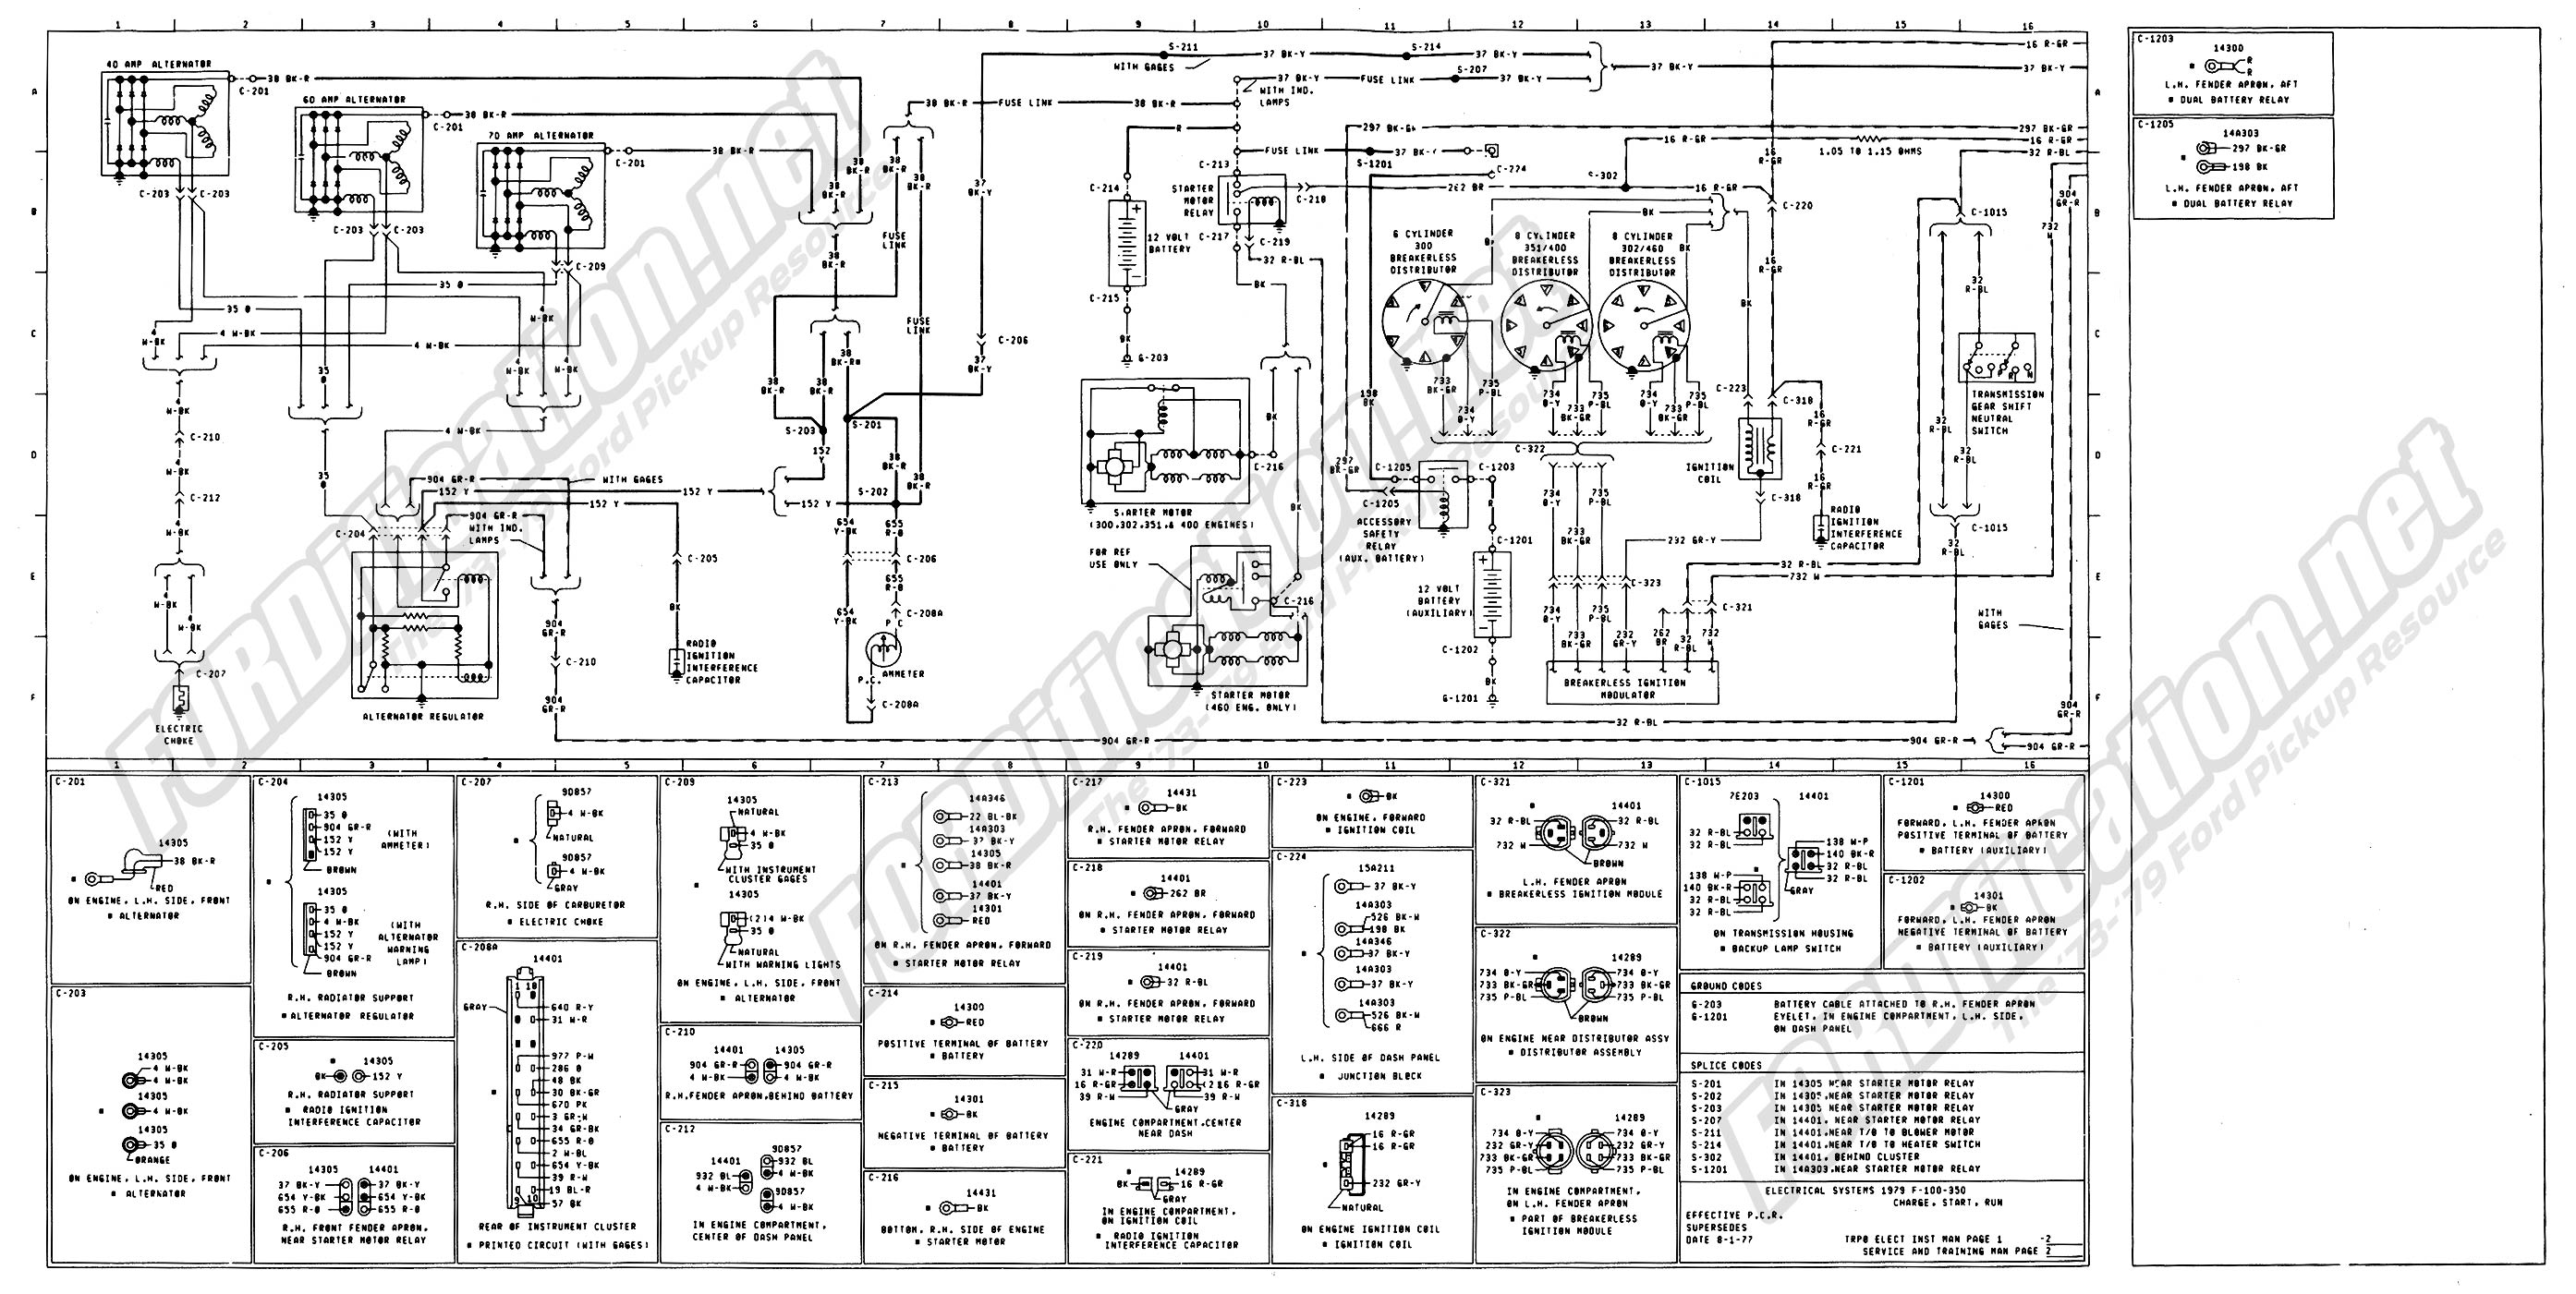 wiring_79master_2of9 1973 1979 ford truck wiring diagrams & schematics fordification net 1999 ford f350 wiring diagram at reclaimingppi.co